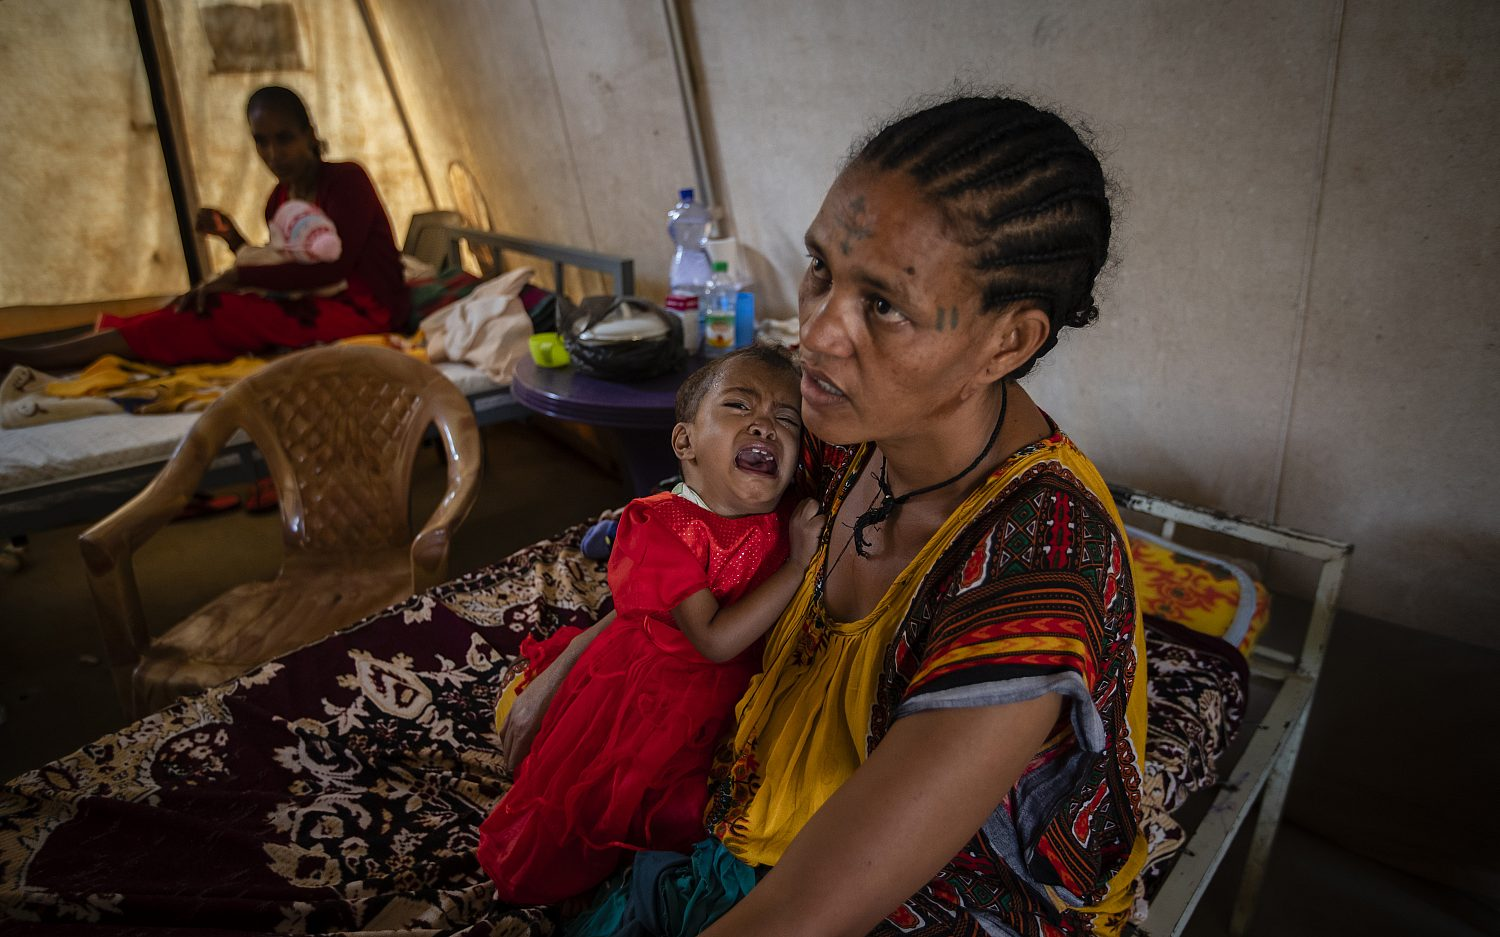 Refugees from Ethiopia's Tigray region recount war suffering